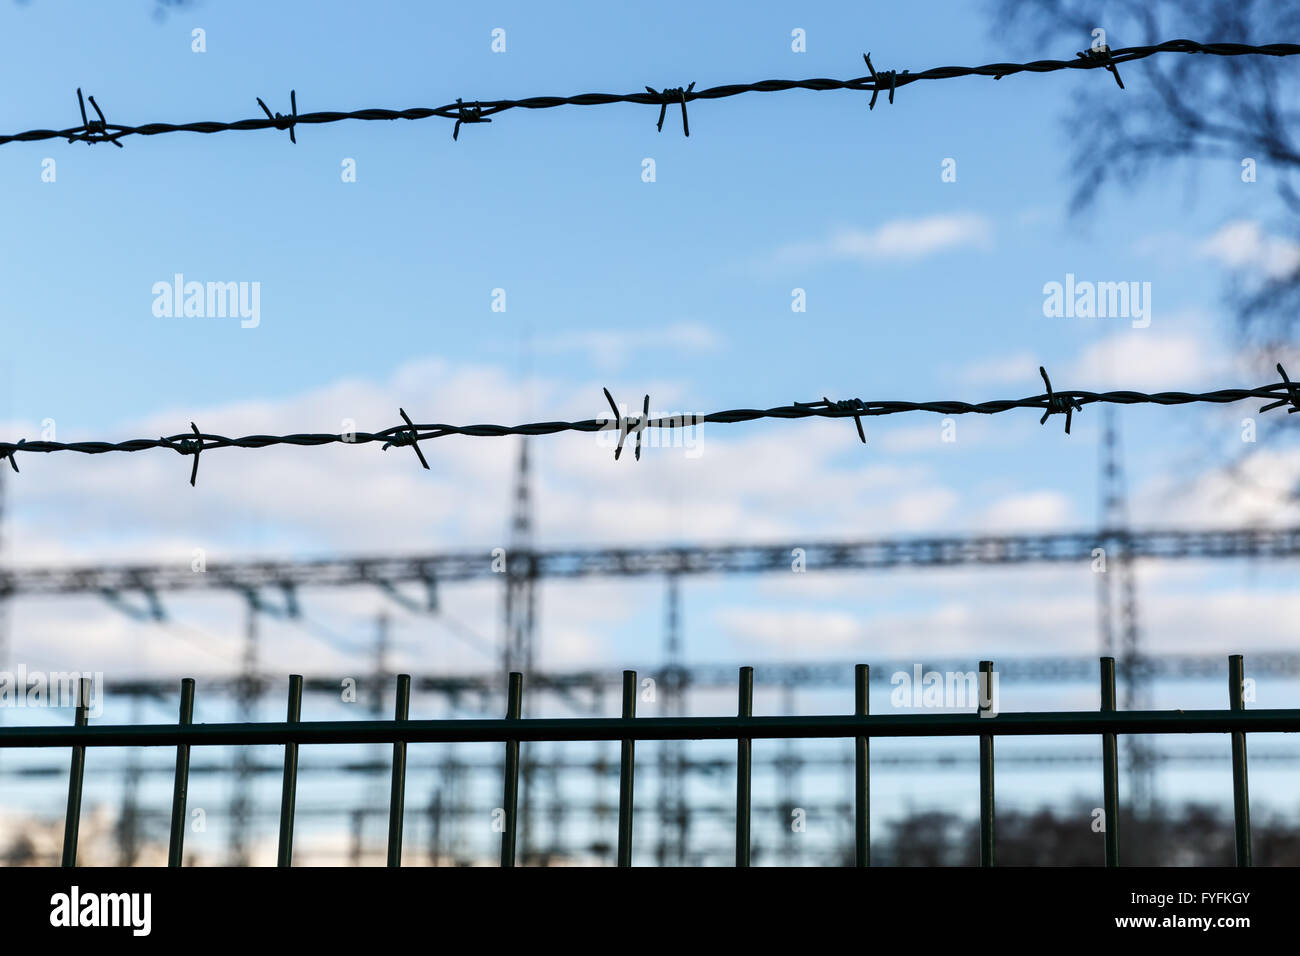 Electrical Net Stock Photos Images Alamy Electric Barbed Wire Free Photo Public Domain Pictures Electricity Sub Station Behind Against Blue Sky Image